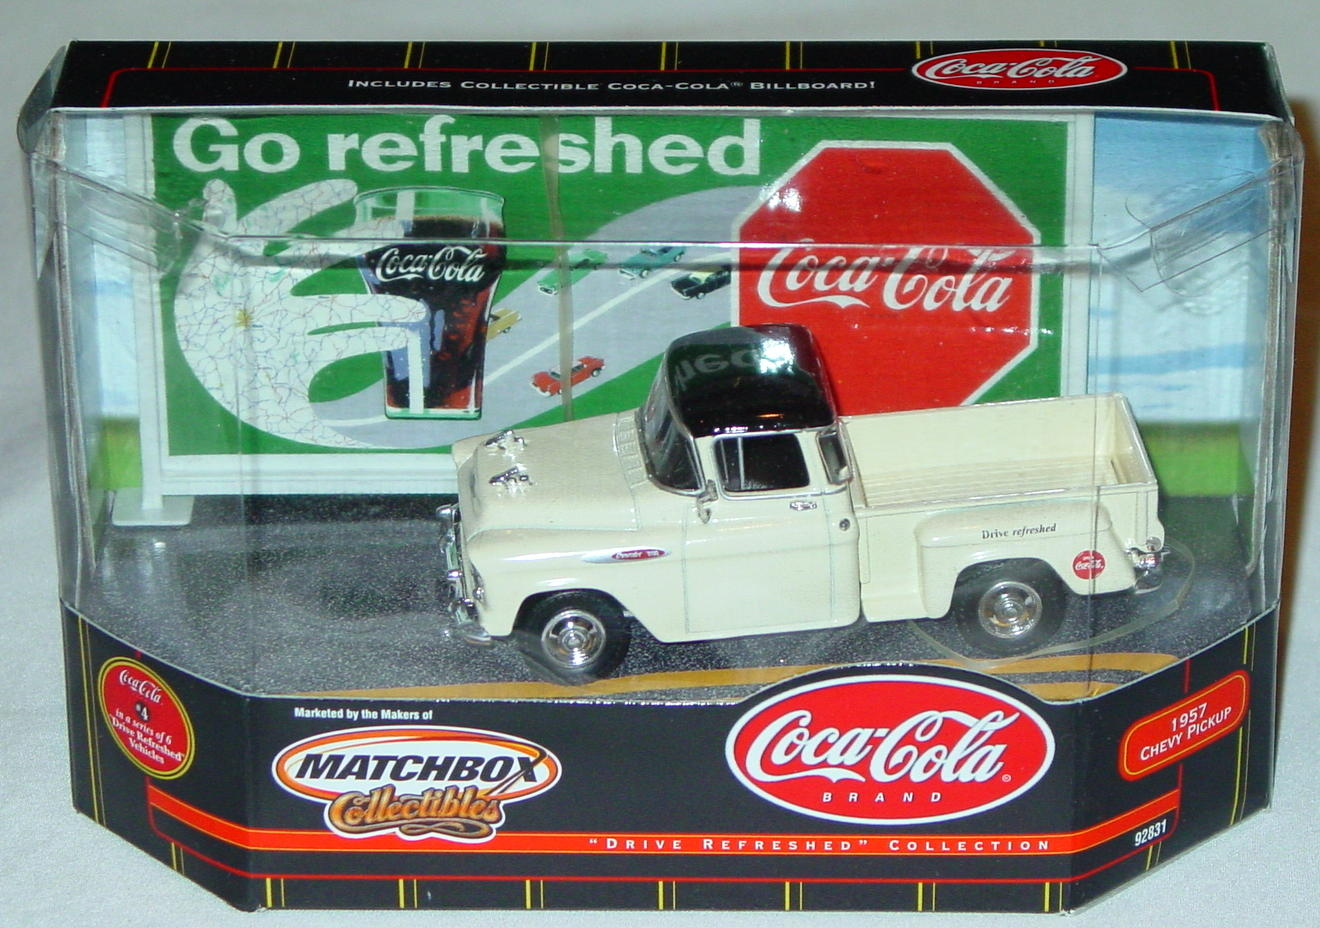 Collectibles - 92831 57 Chevy Pickup Cream Coke Drive Refreshed